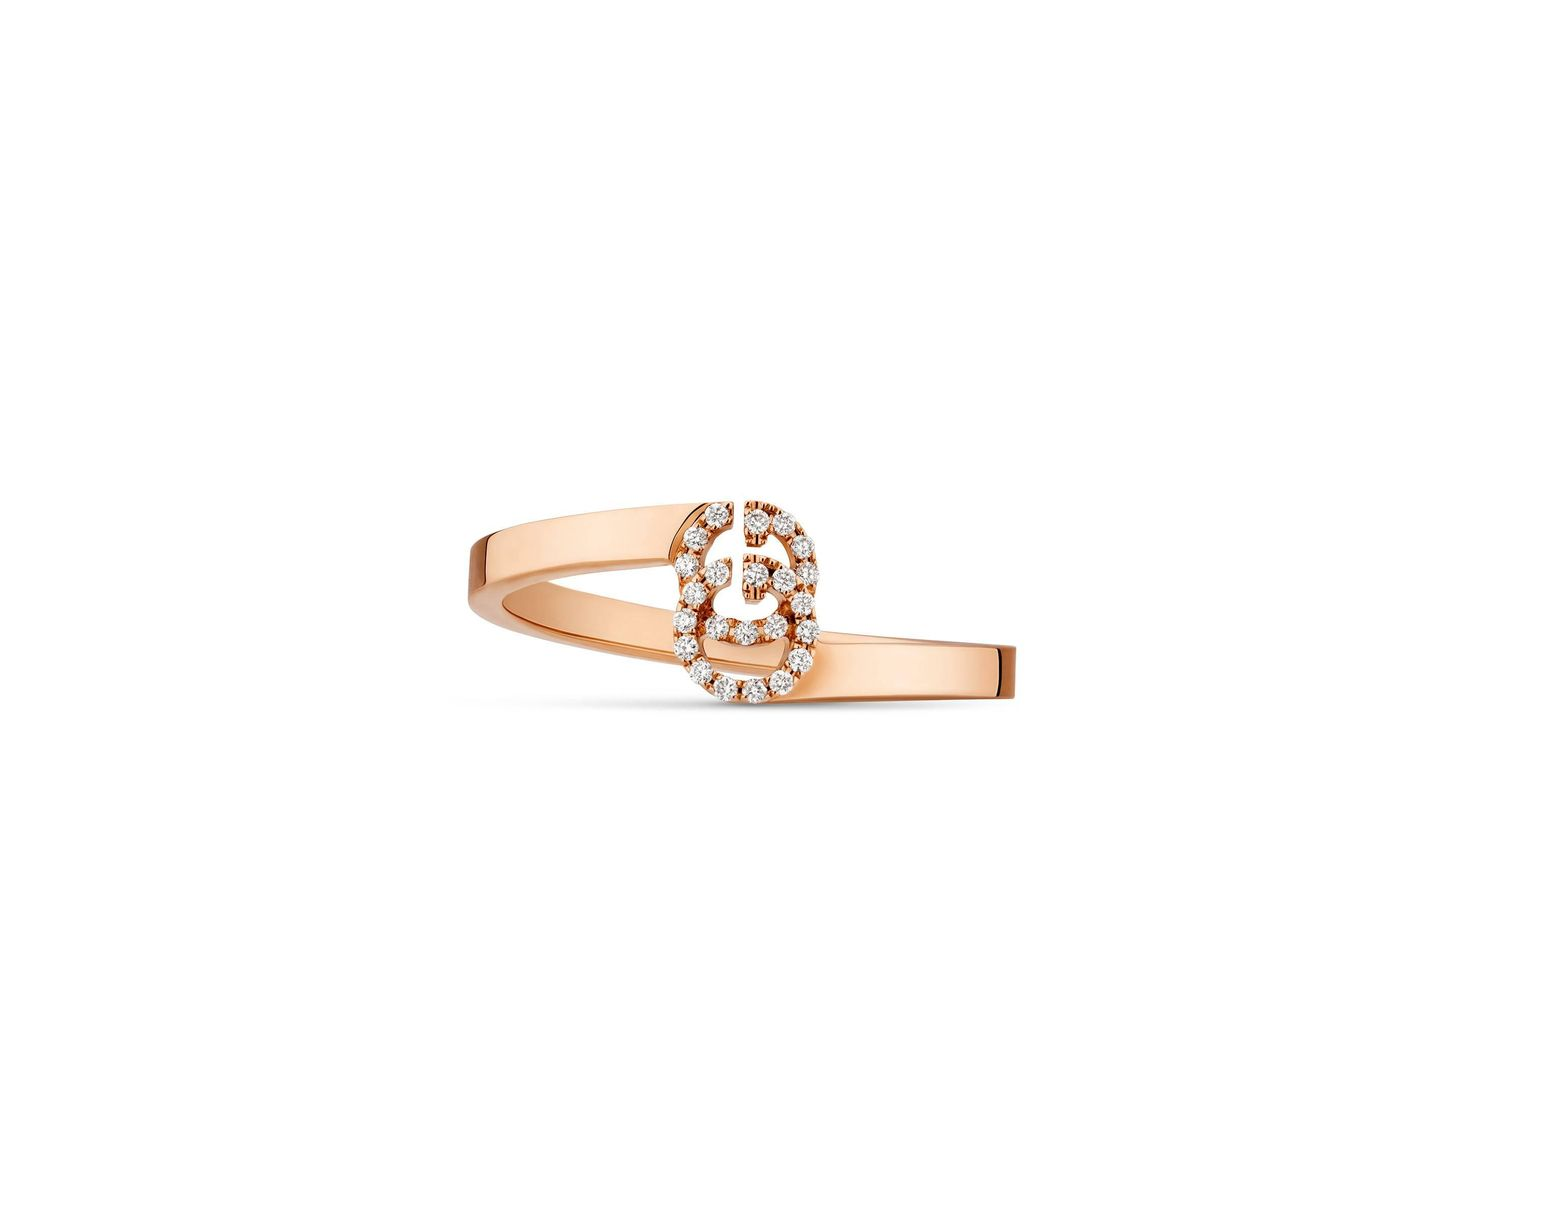 bdc3a08d5f Women's Metallic GG Ring In Rose Gold With Diamonds